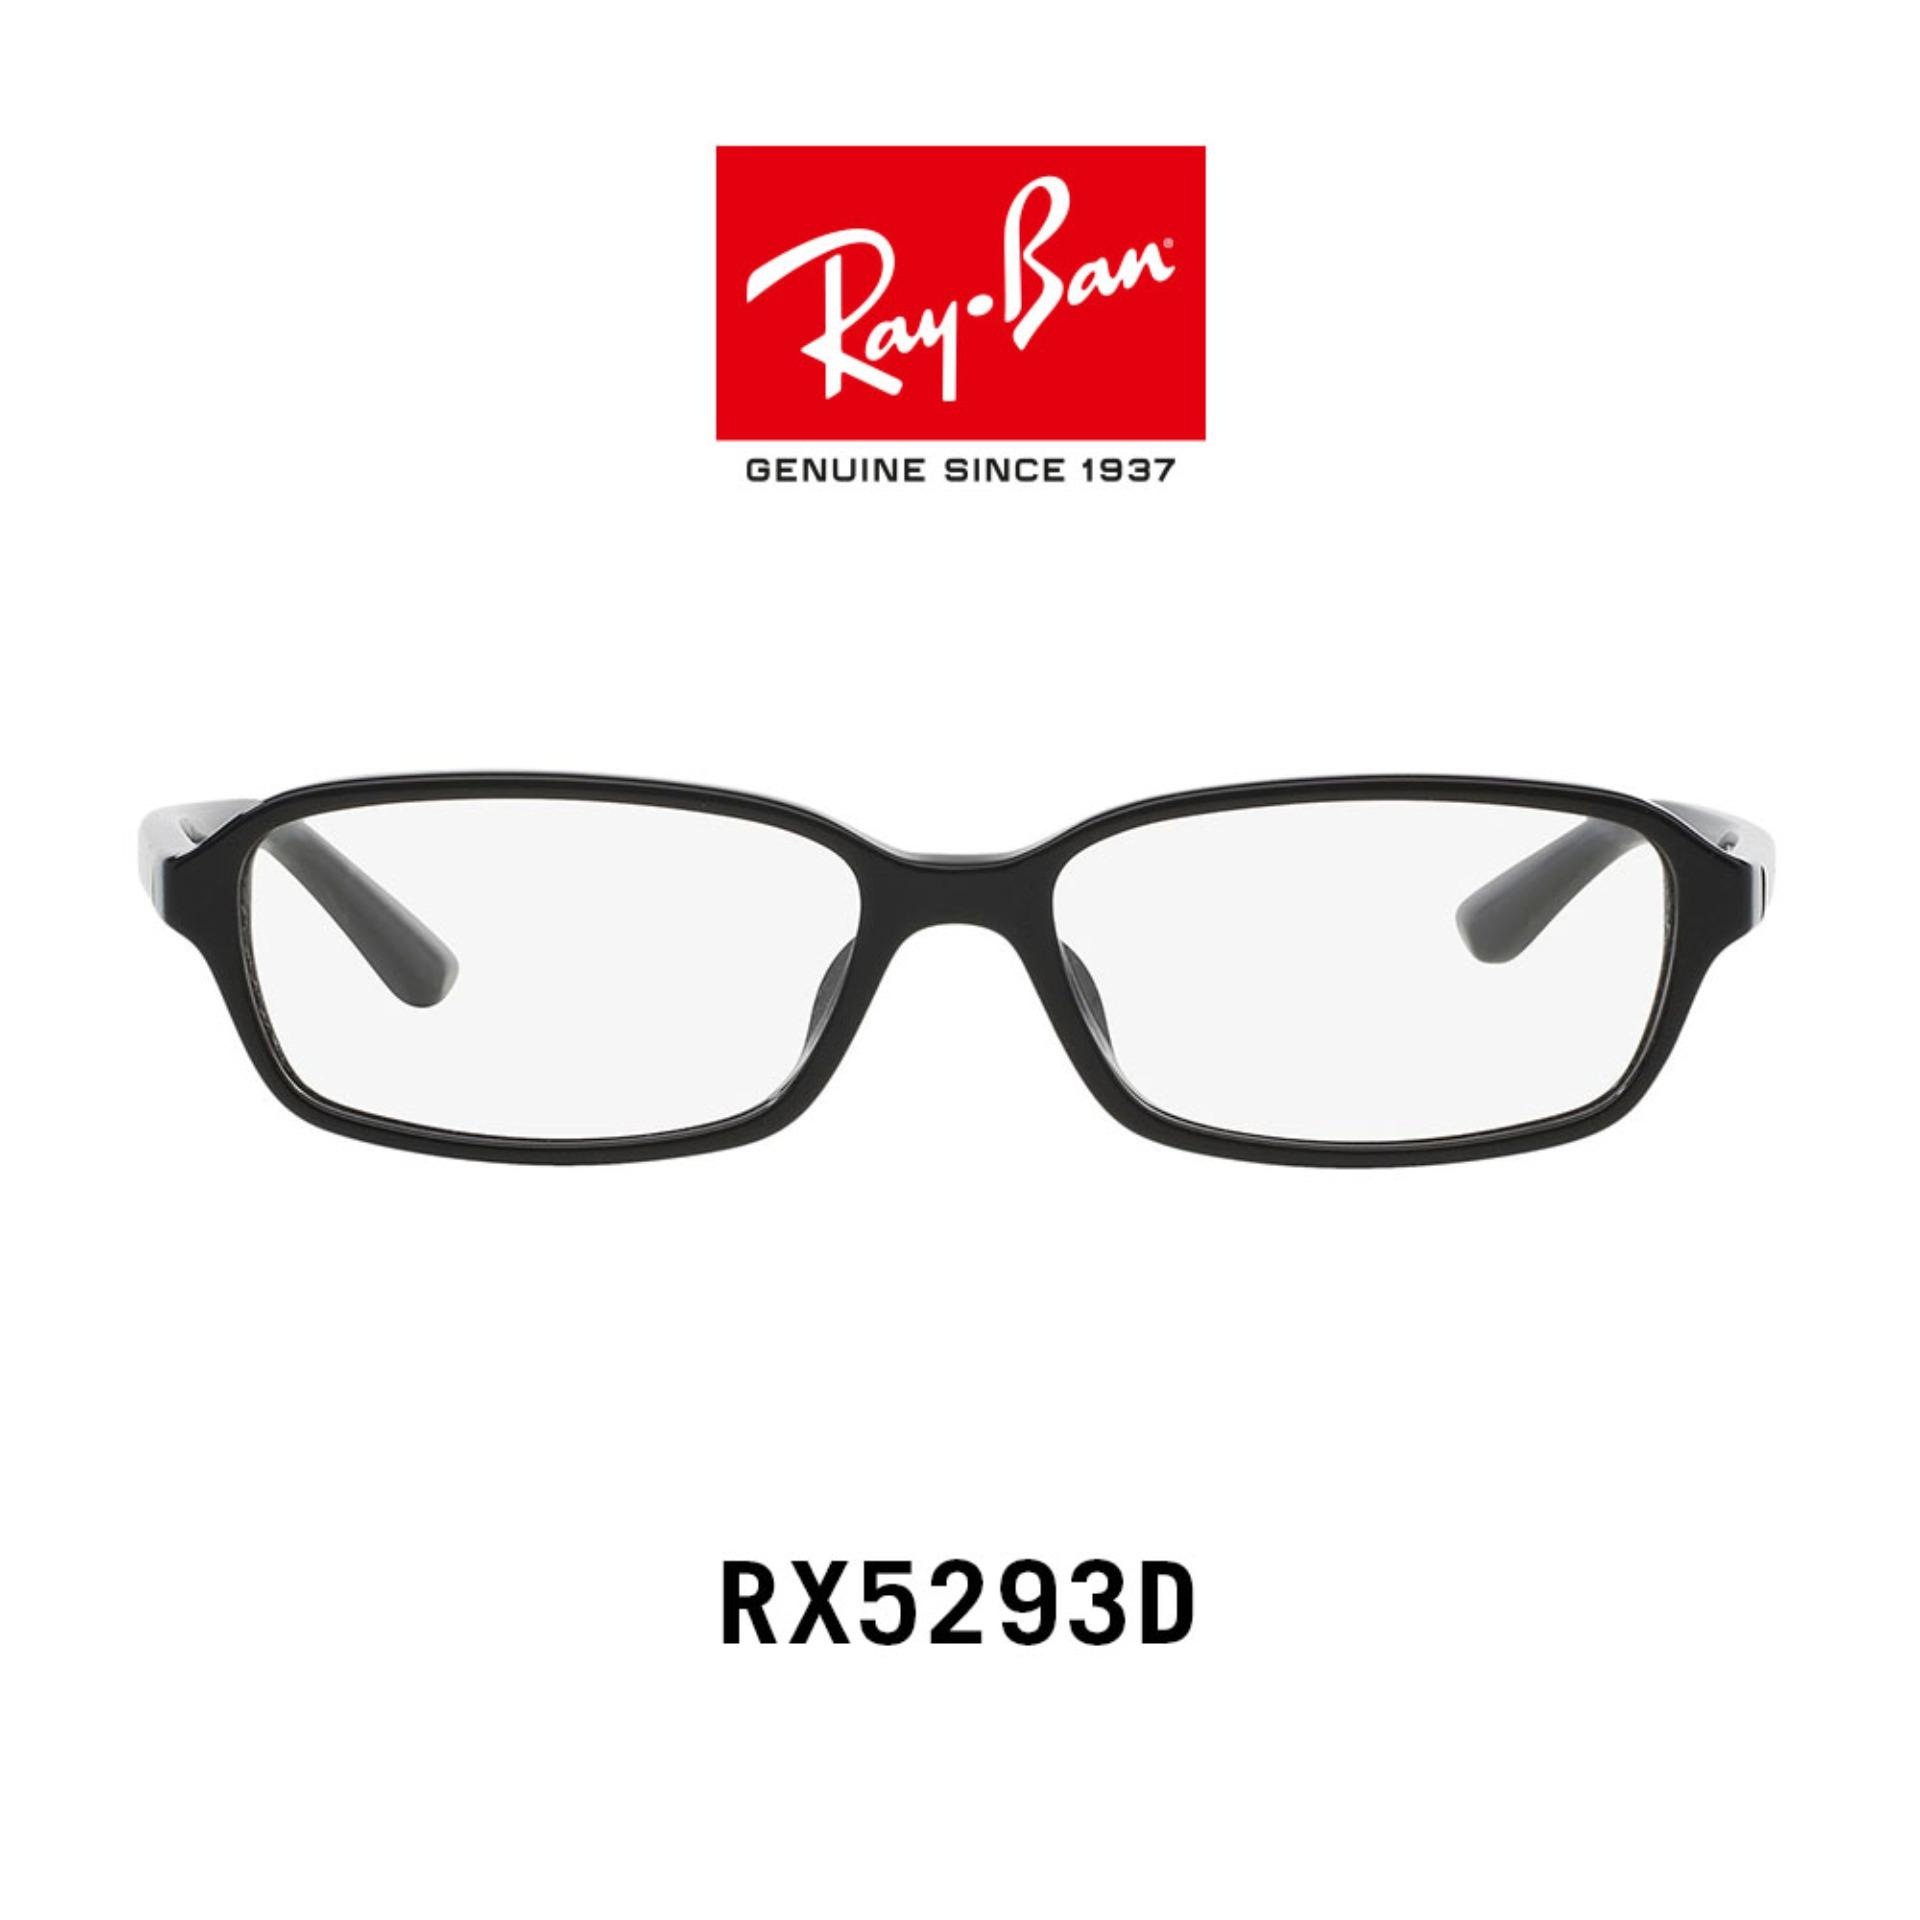 4bbadebcc3 Product details of Ray-Ban - RX5293D - Black (2000) - Glasses